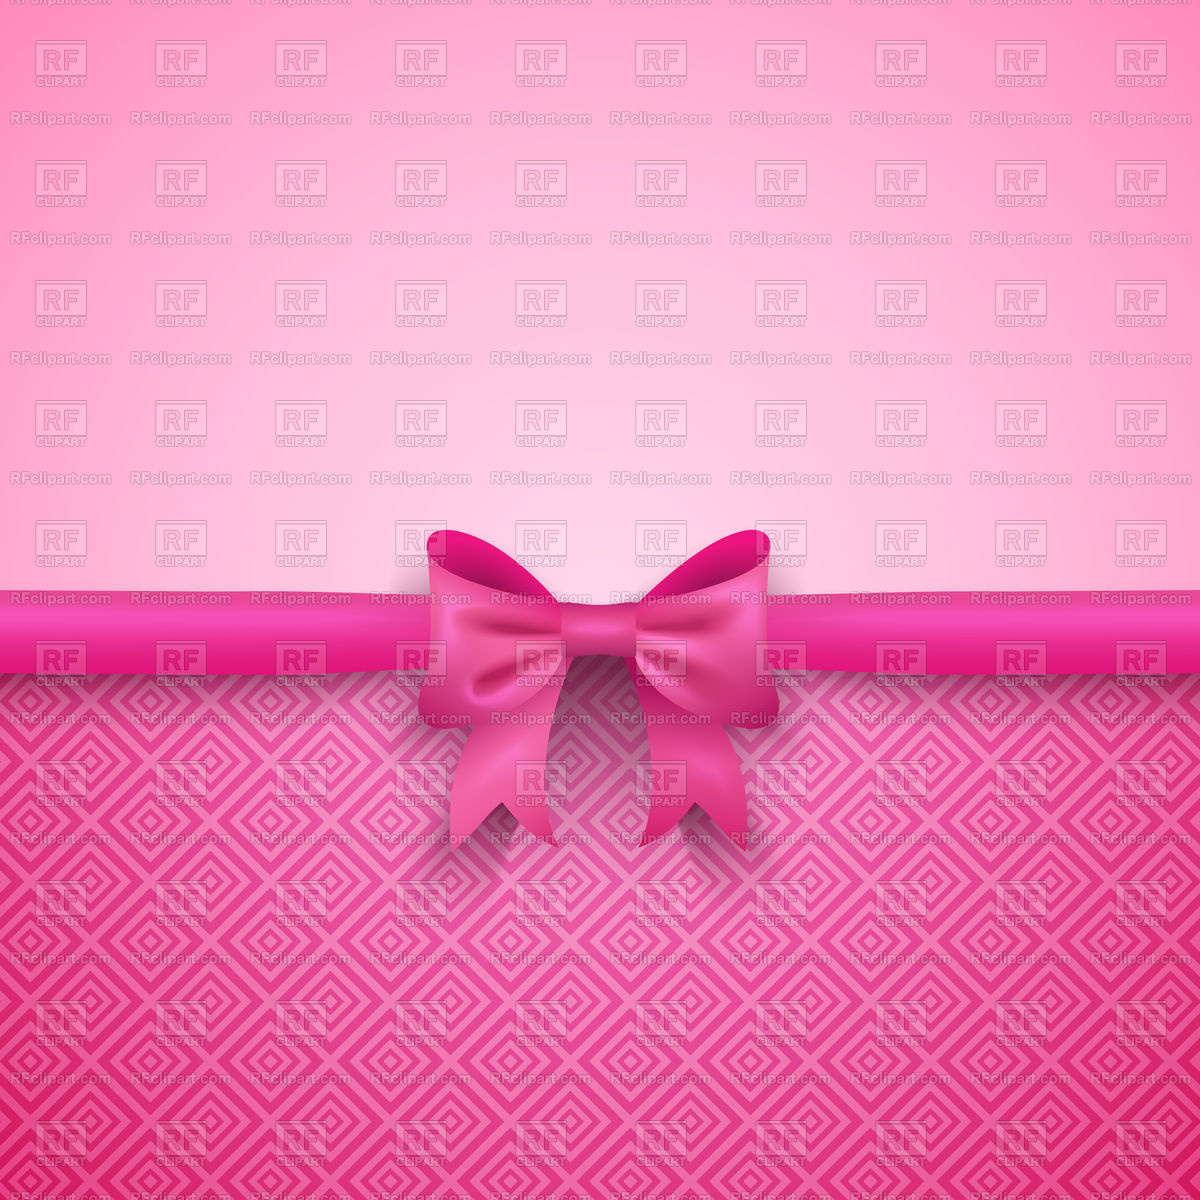 1200x1200 - Background Pink 33